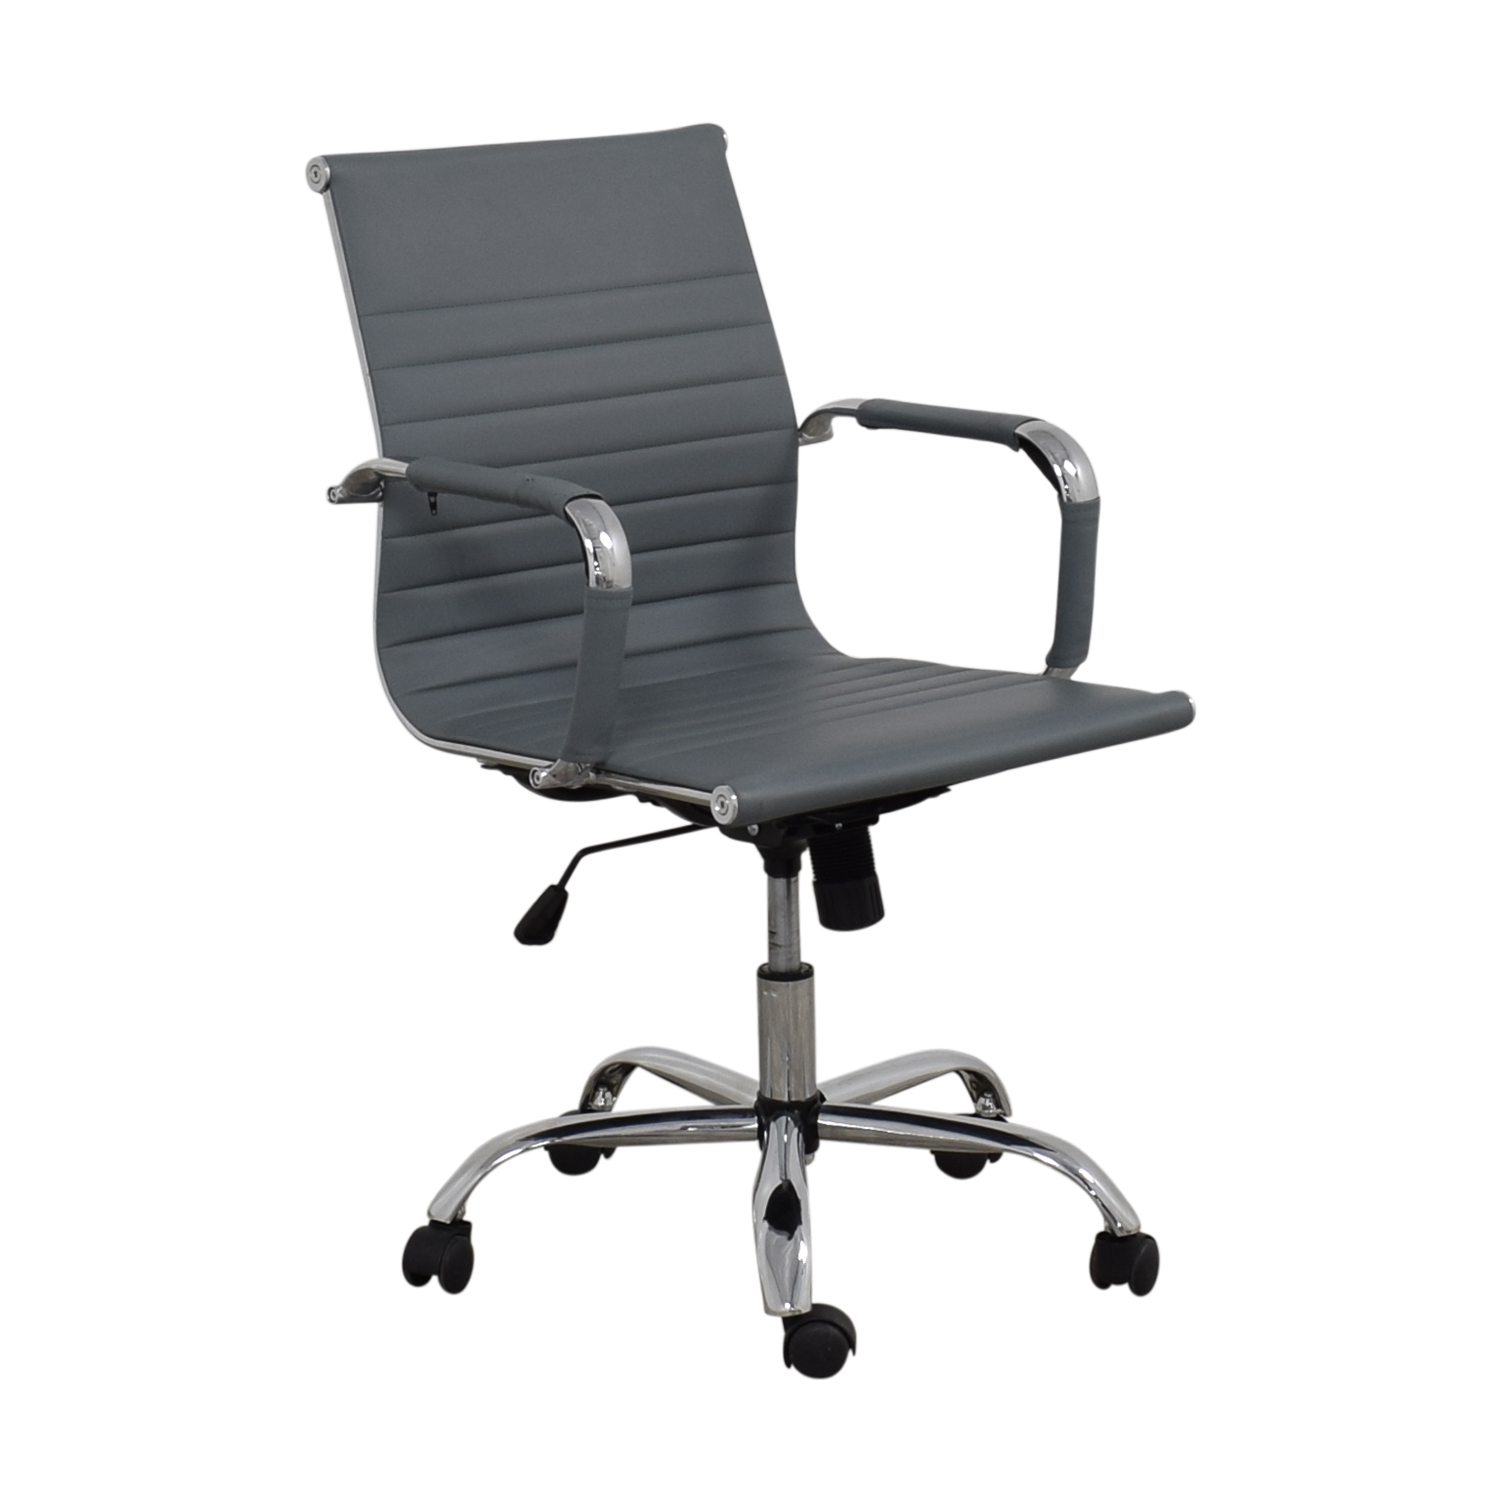 Grey Ribbed Faux Leather Office Chairs / Home Office Chairs